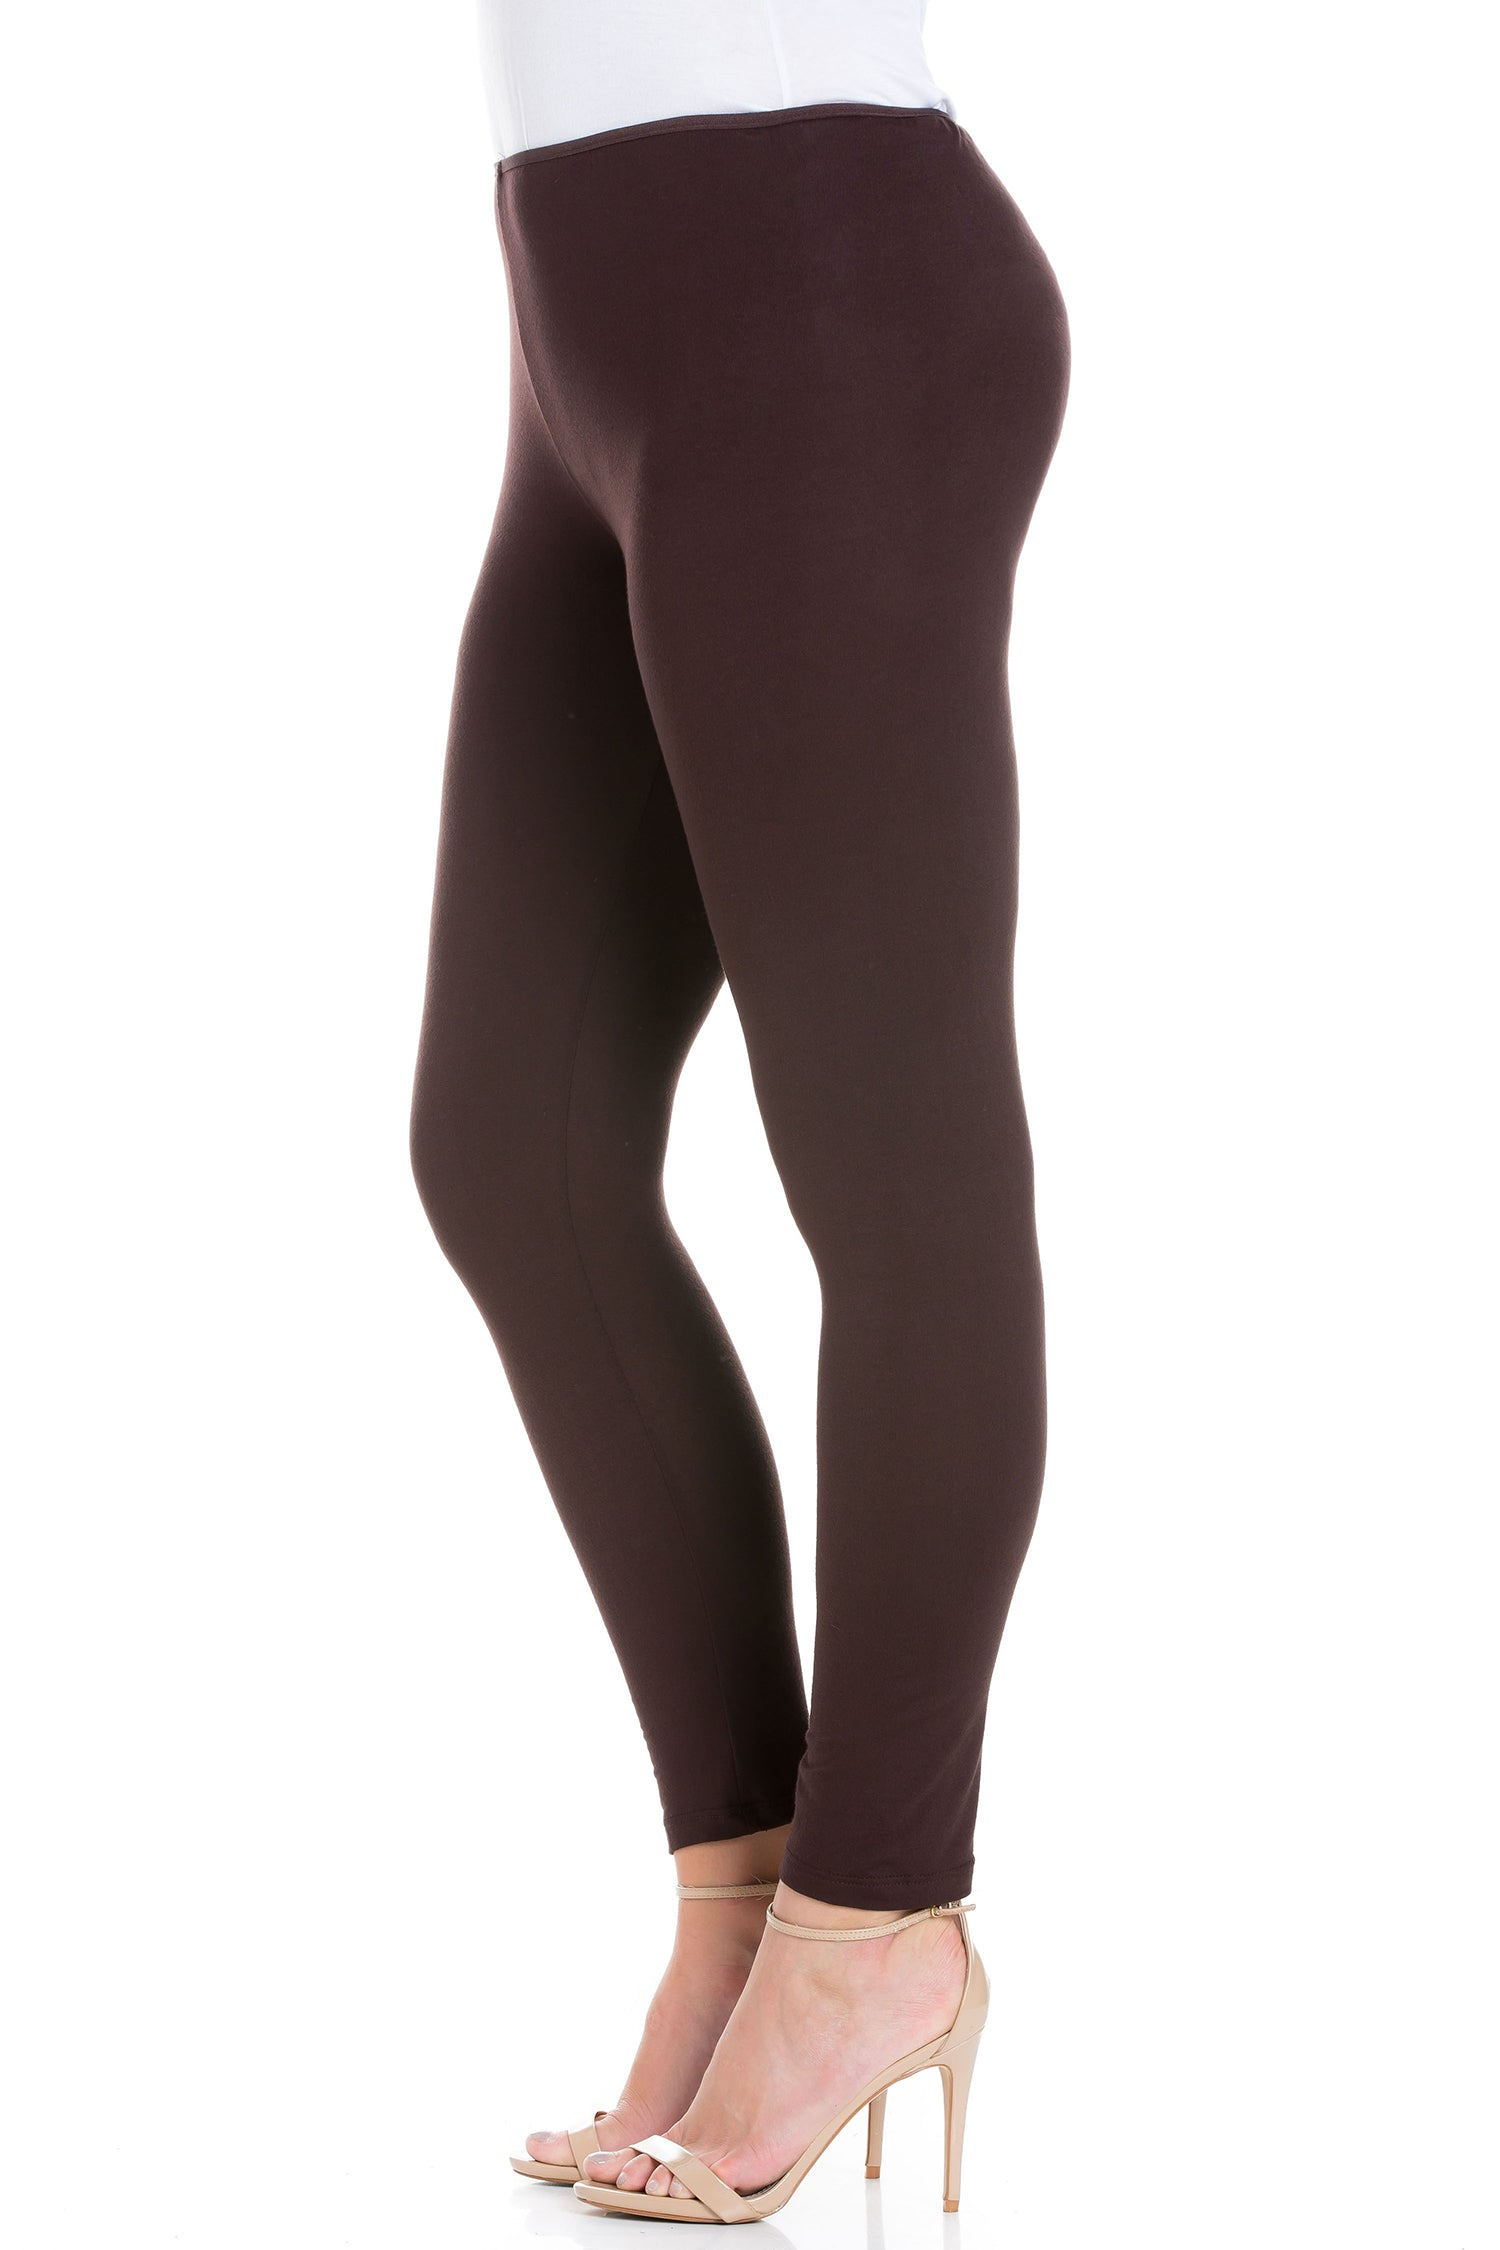 24seven Comfort Apparel Comfortable Ankle Length Plus Size Leggings-PANT-24Seven Comfort Apparel-BROWN-1X-24/7 Comfort Apparel